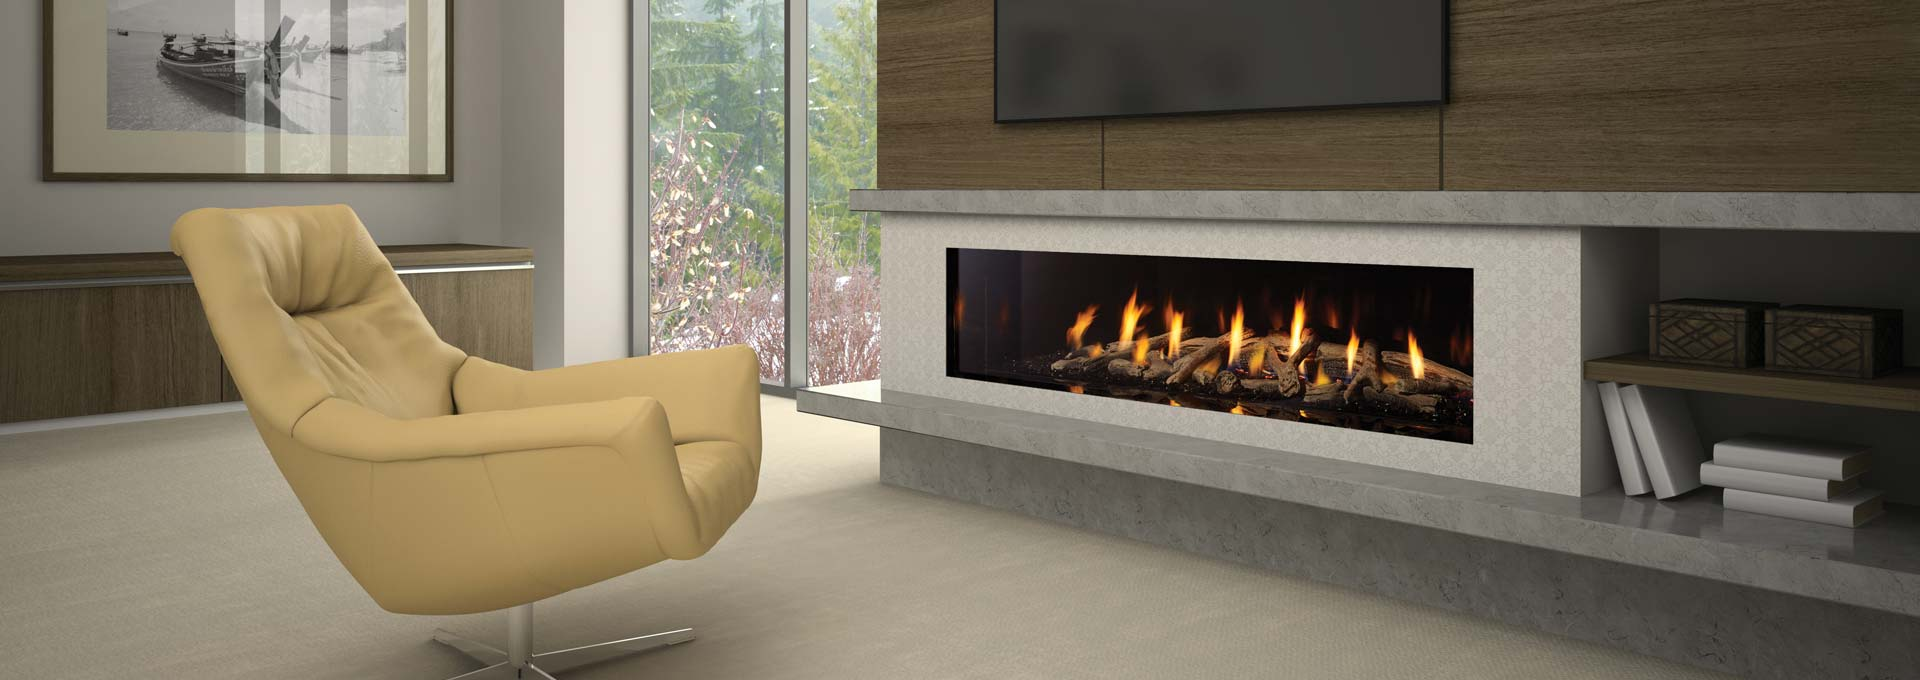 Regency City Series New York View 72 Modern Gas Fireplace